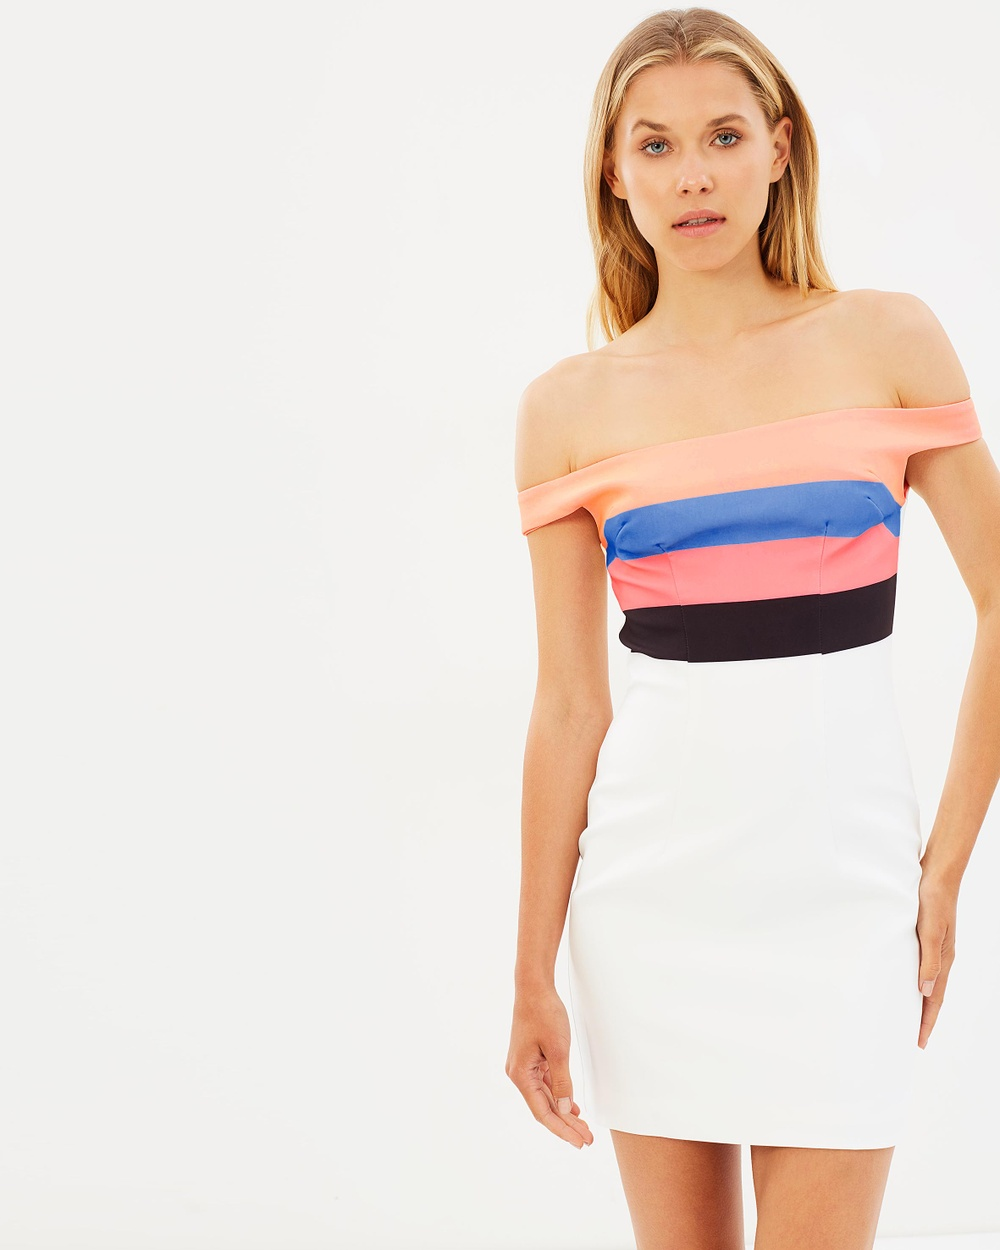 BY JOHNNY. Neon Stripe Cold Shoulder Mini Dress Bodycon Dresses Neon Stripe White Neon Stripe Cold Shoulder Mini Dress